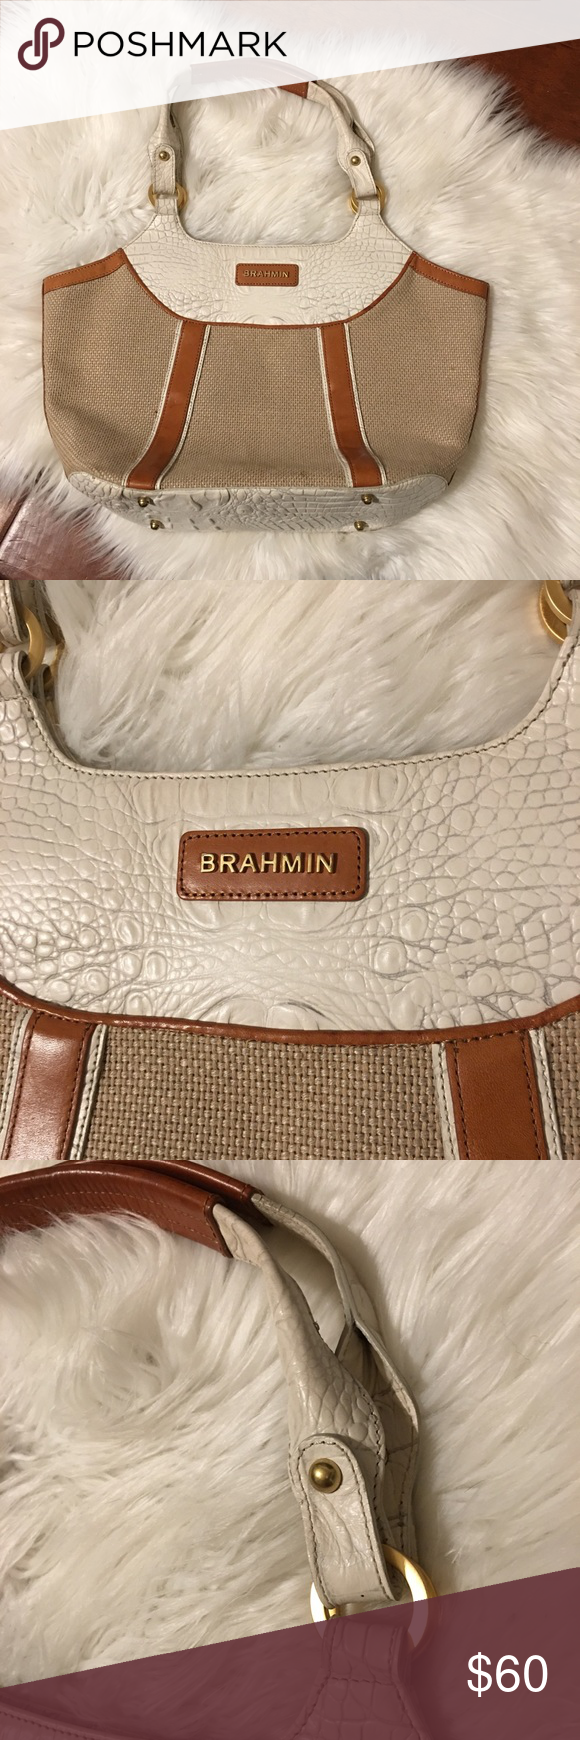 Brahmin ostrich shoulder bag Beautiful tan leather and white ostrich on  straw bag. Has metal on bottom to keep from damaging. 332afd824f